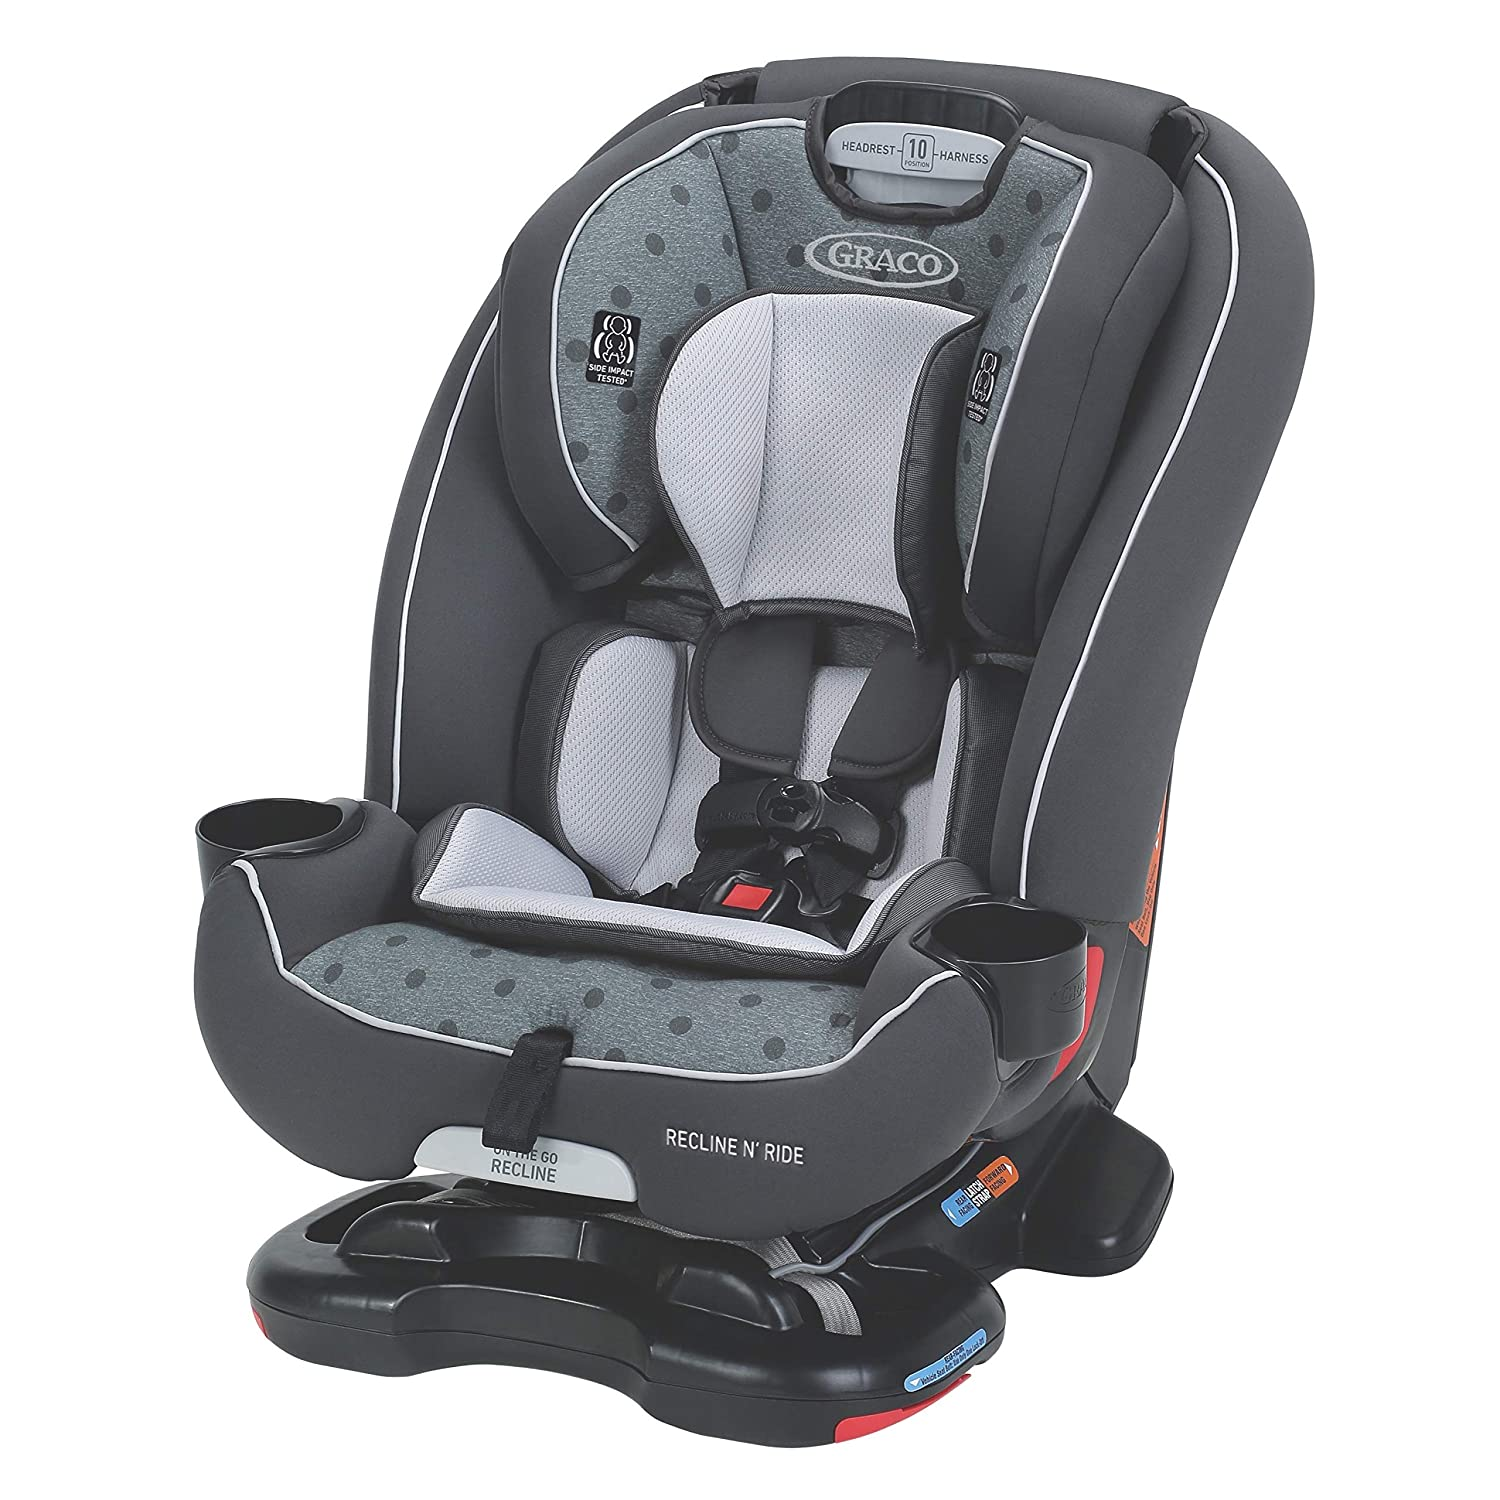 Graco Recline N Ride 3-in-1 Car Seat featuring On the Go Recline, Clifton